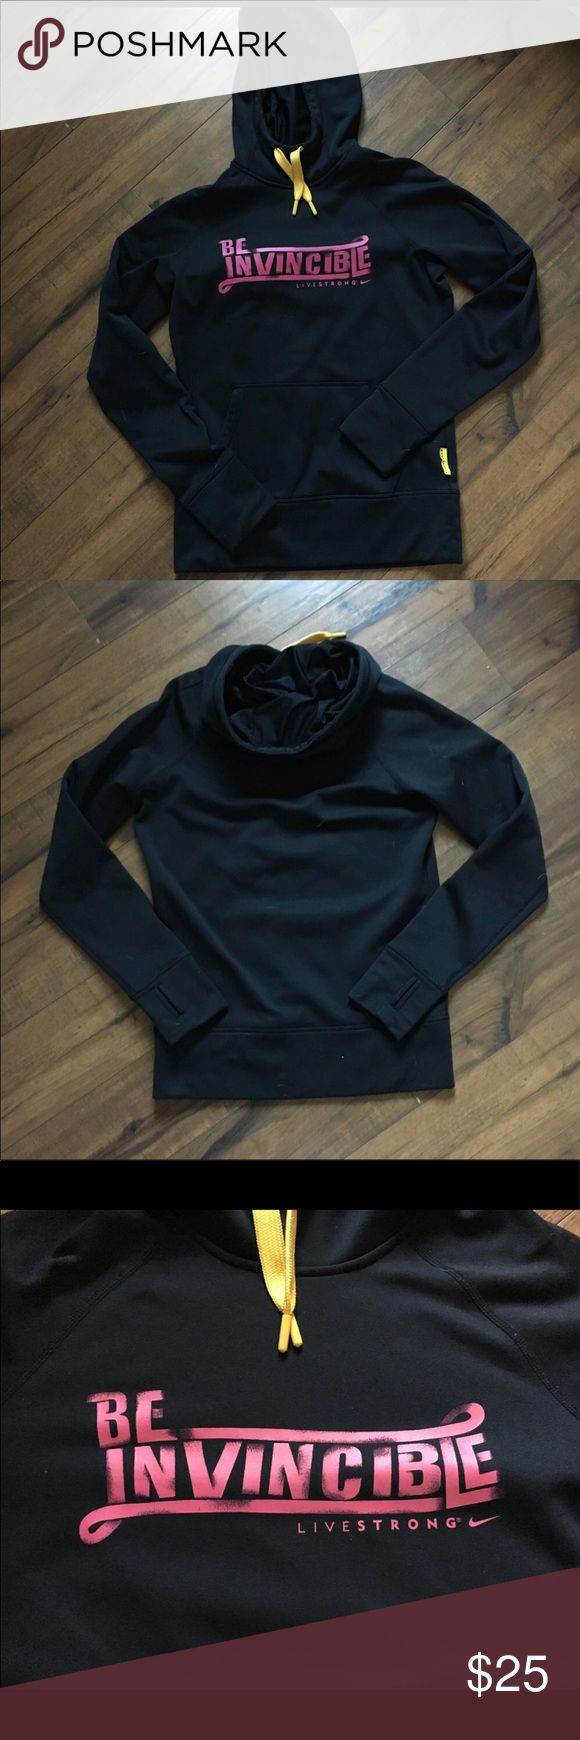 """💥Nike Livestrong hoodie, sweatshirt, black Nike Livestrong hoodie.  •Black with pink lettering & a yellow drawstring •Thumb holes in the cuffs.   •Barely worn, no visible wear- excellent condition! •Size Sm •Length: 27"""", armpit to armpit: 19"""", sleeve length (from base of neck): 30.5"""".   🎀More hoodies/ sweatshirts in my closet🎀 ⚜️ Same/next day ship ⚜️ 🐲 Smoke-free 🐲  I do not discuss price in the comments, use the offer button please Nike Tops Sweatshirts & Hoodies"""